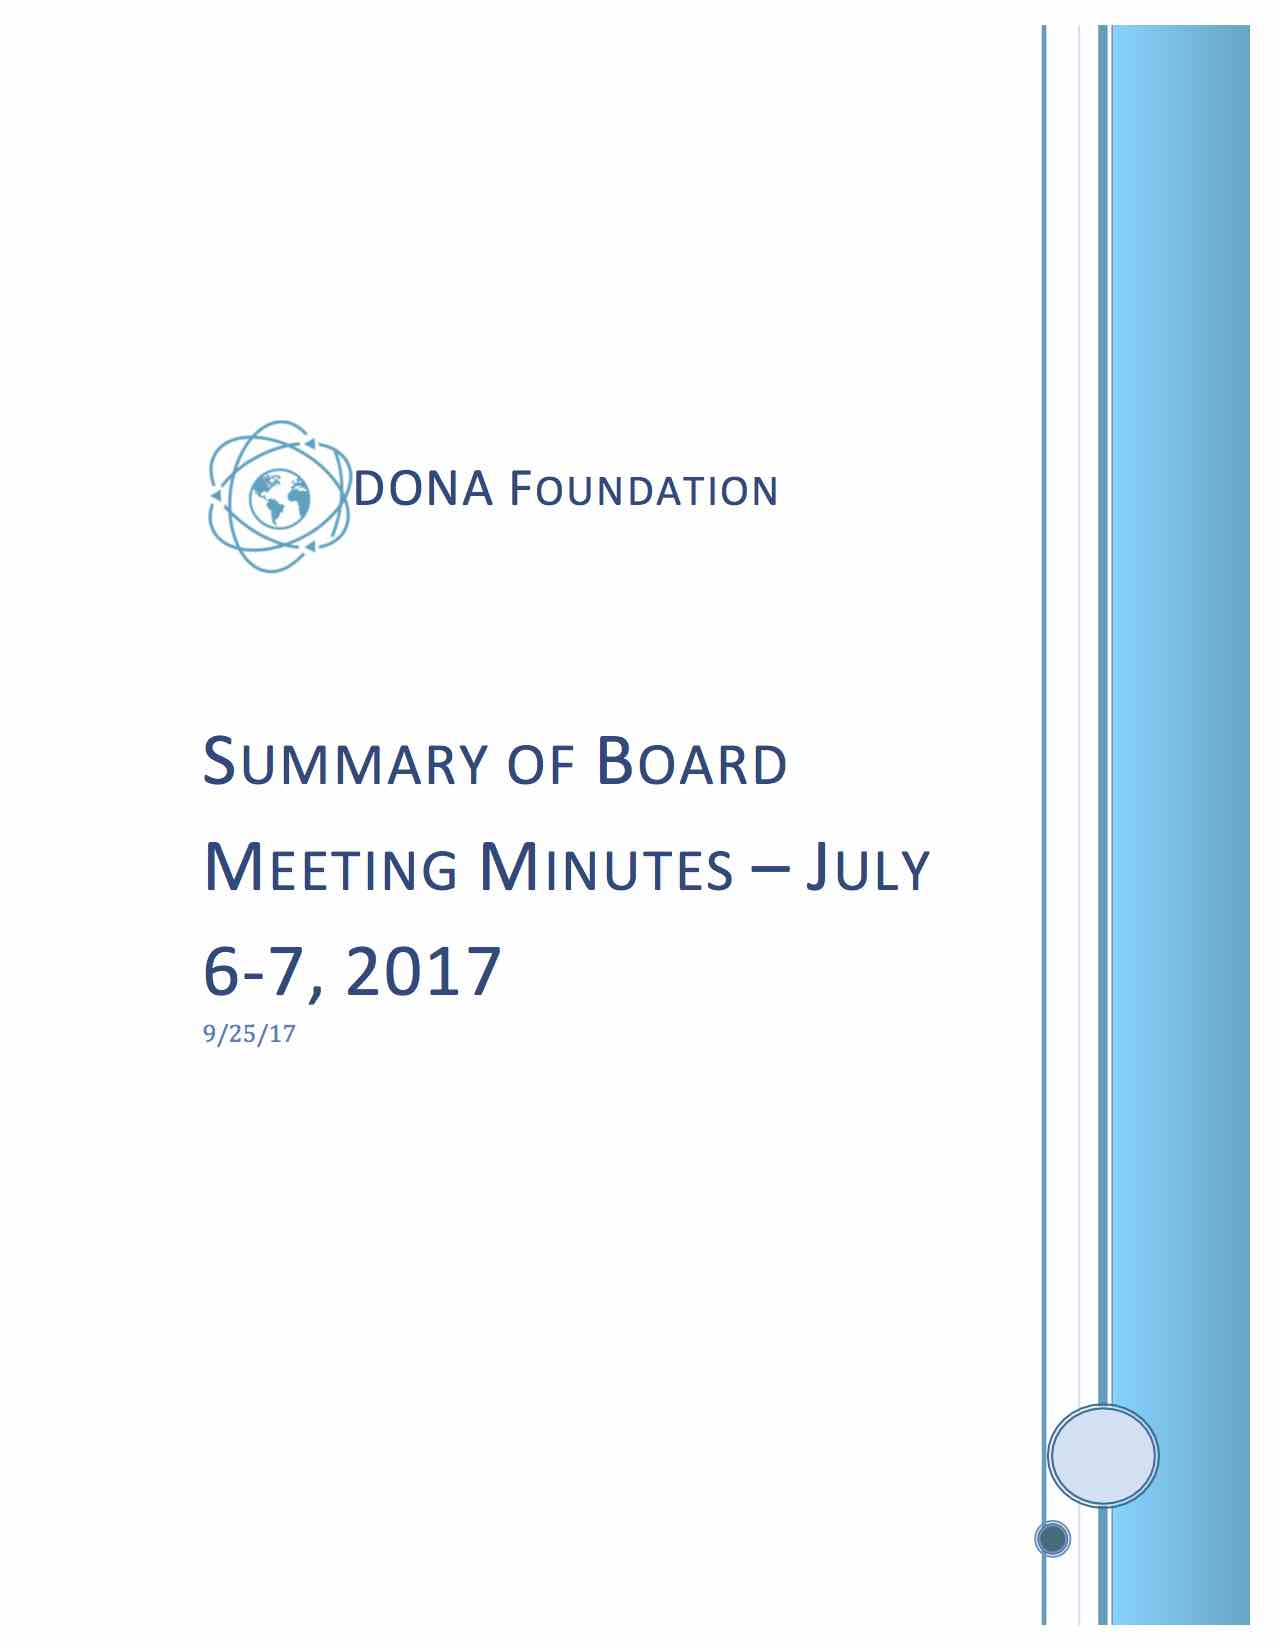 Summary of Board Minutes July 6-7, 2017